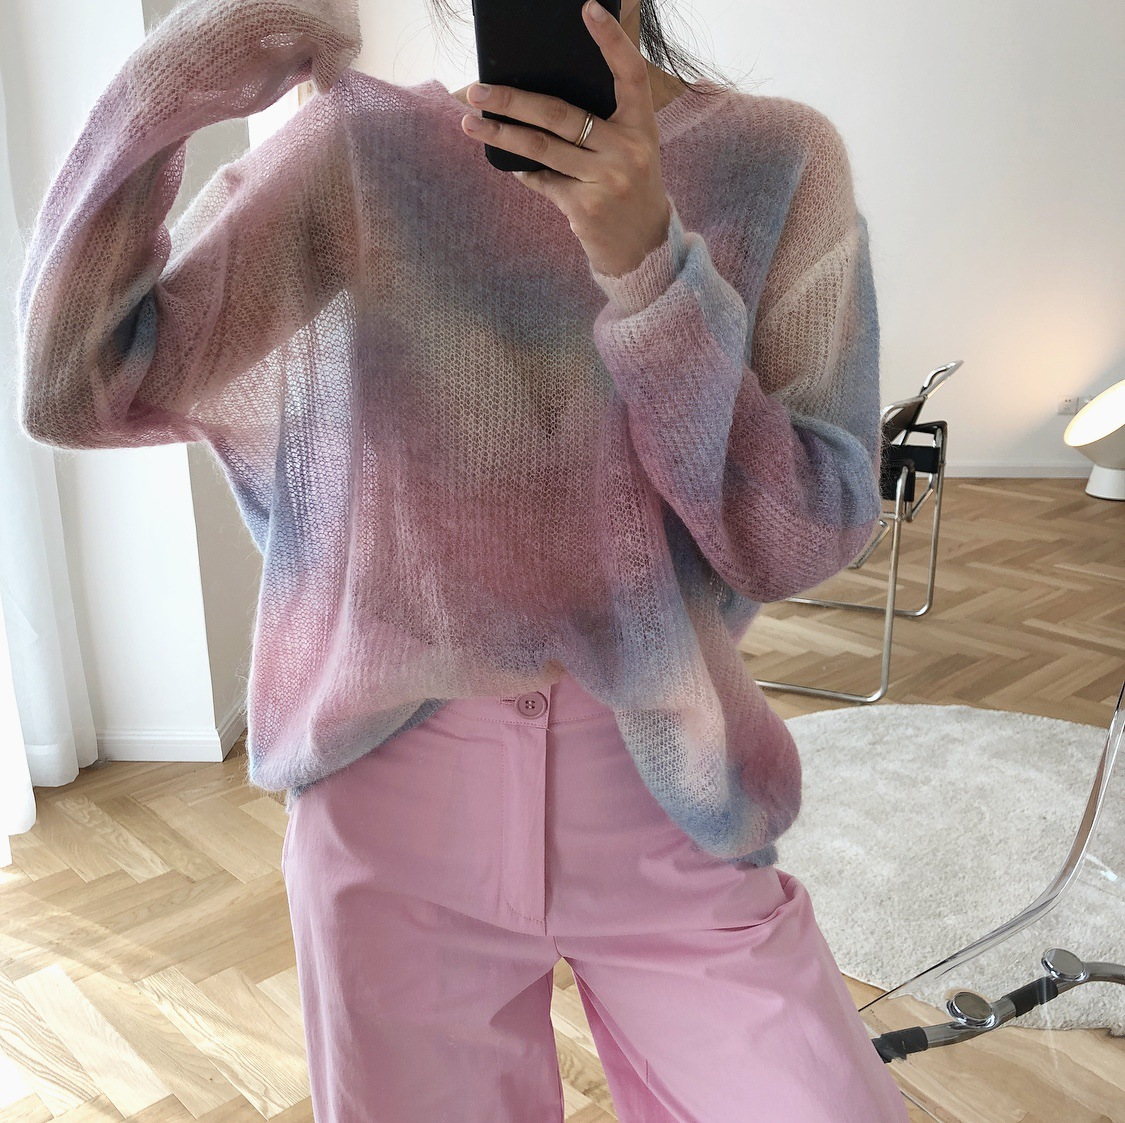 2020 Thin Mohair Sweater Women Loose Casual Pullovers Women Sweater Sweet Elegant Sweater Casual Pull Femme Perspective Tops